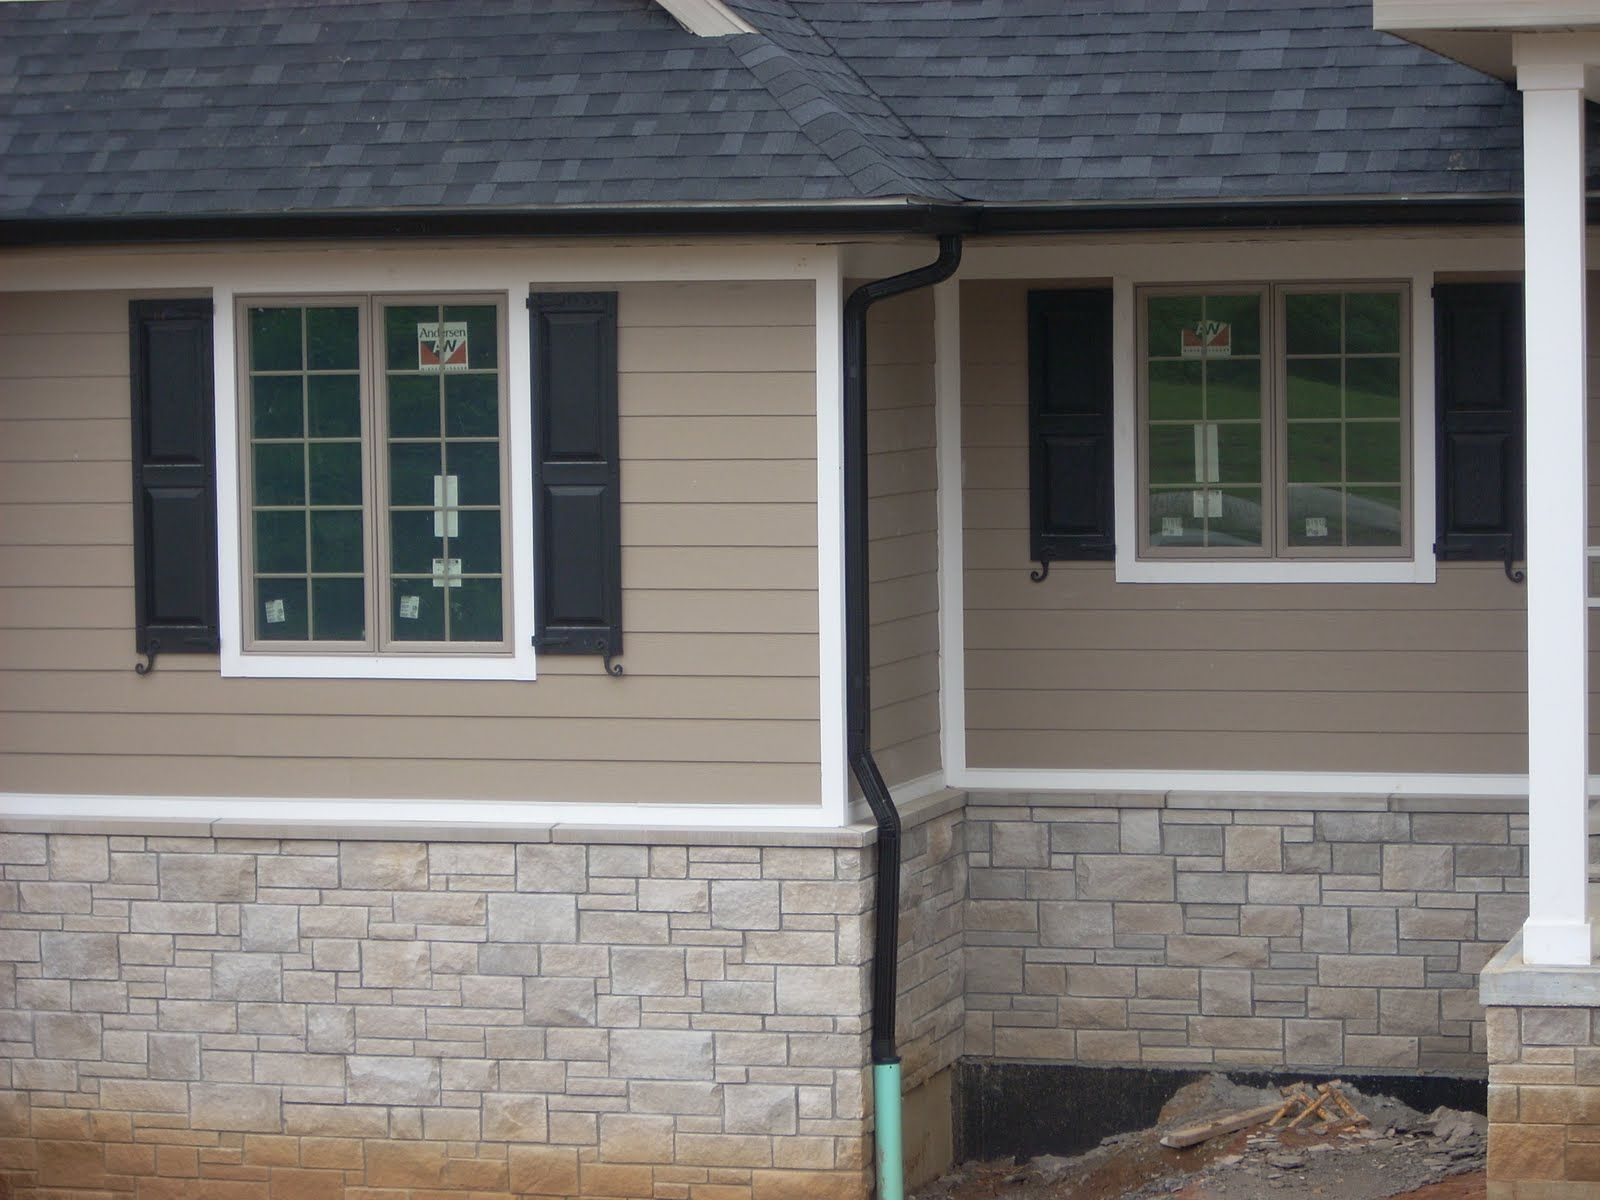 Gutters And Lights Exterior House Colors Tan House House